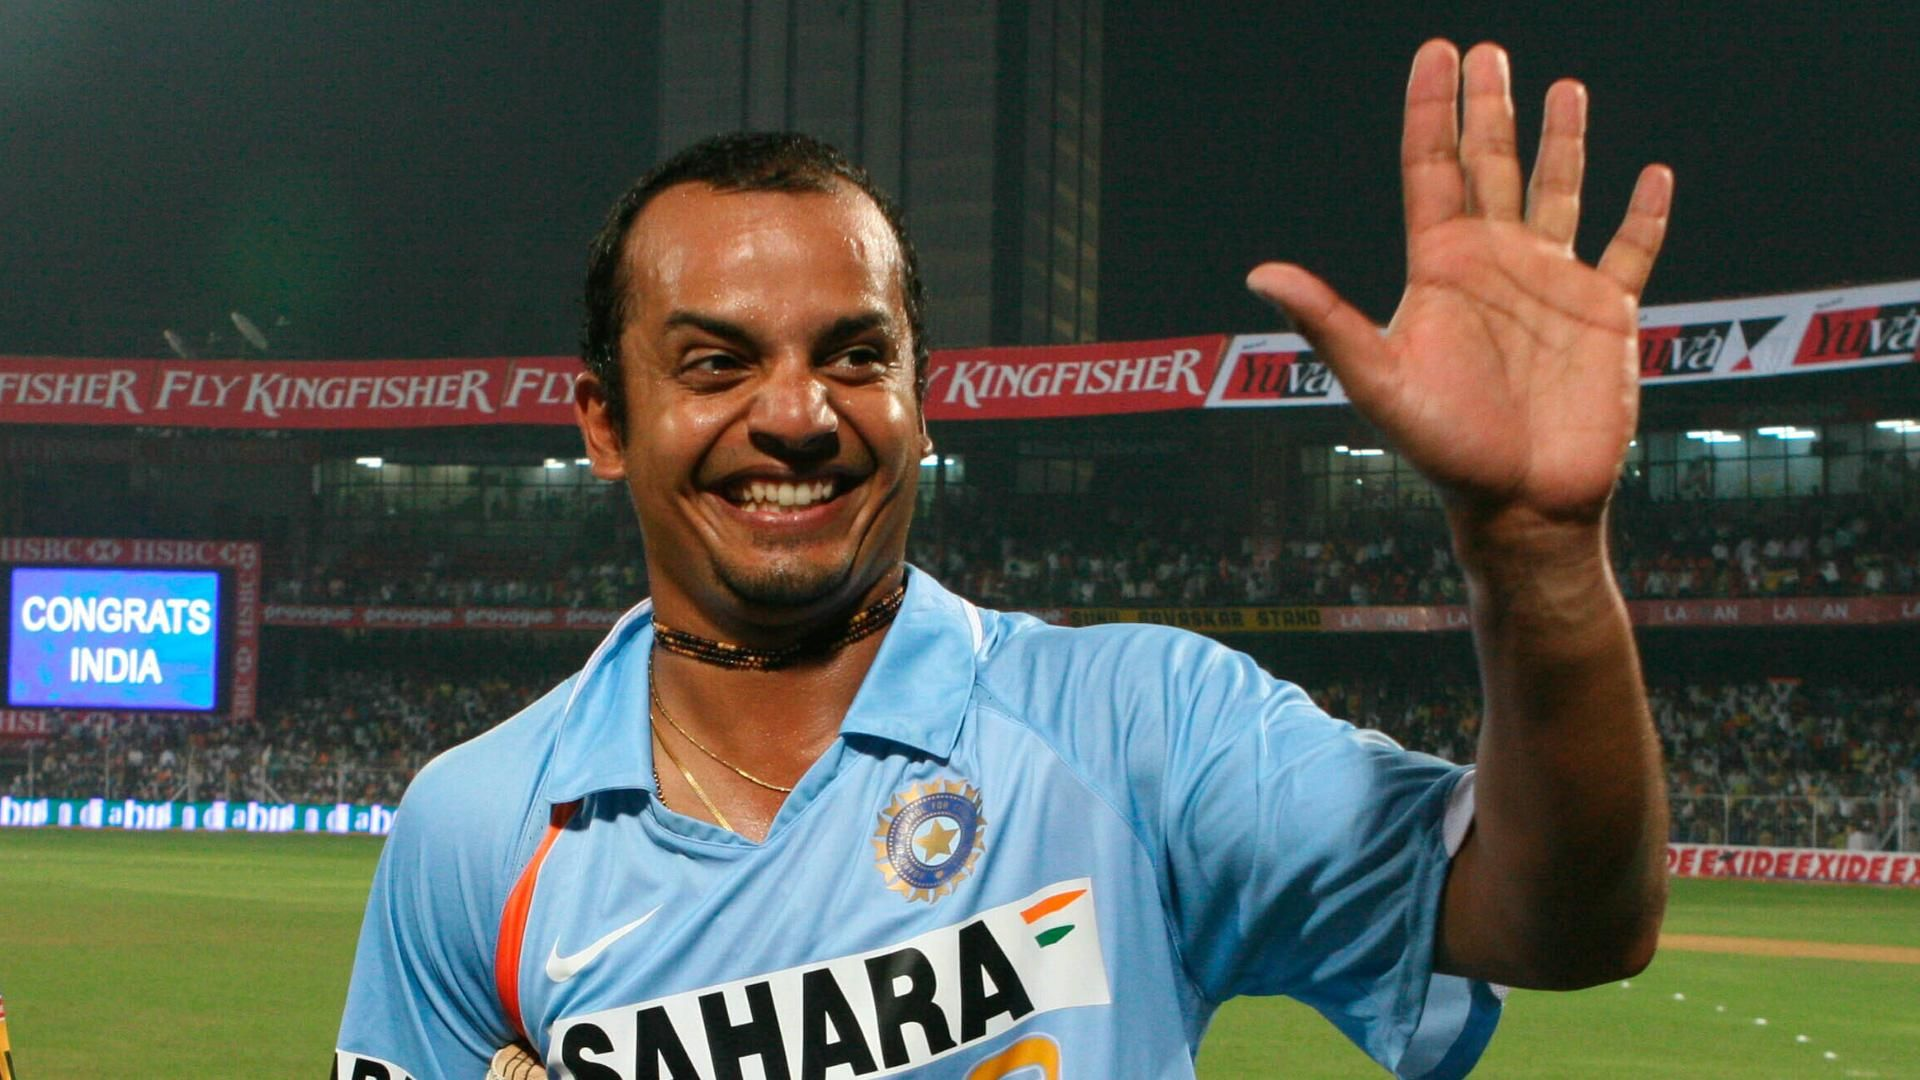 Murali Kartik was Indian left arm spinner, who could not get enough chances due to consistent performance of Anil Kumble and Harbhajan Singh.